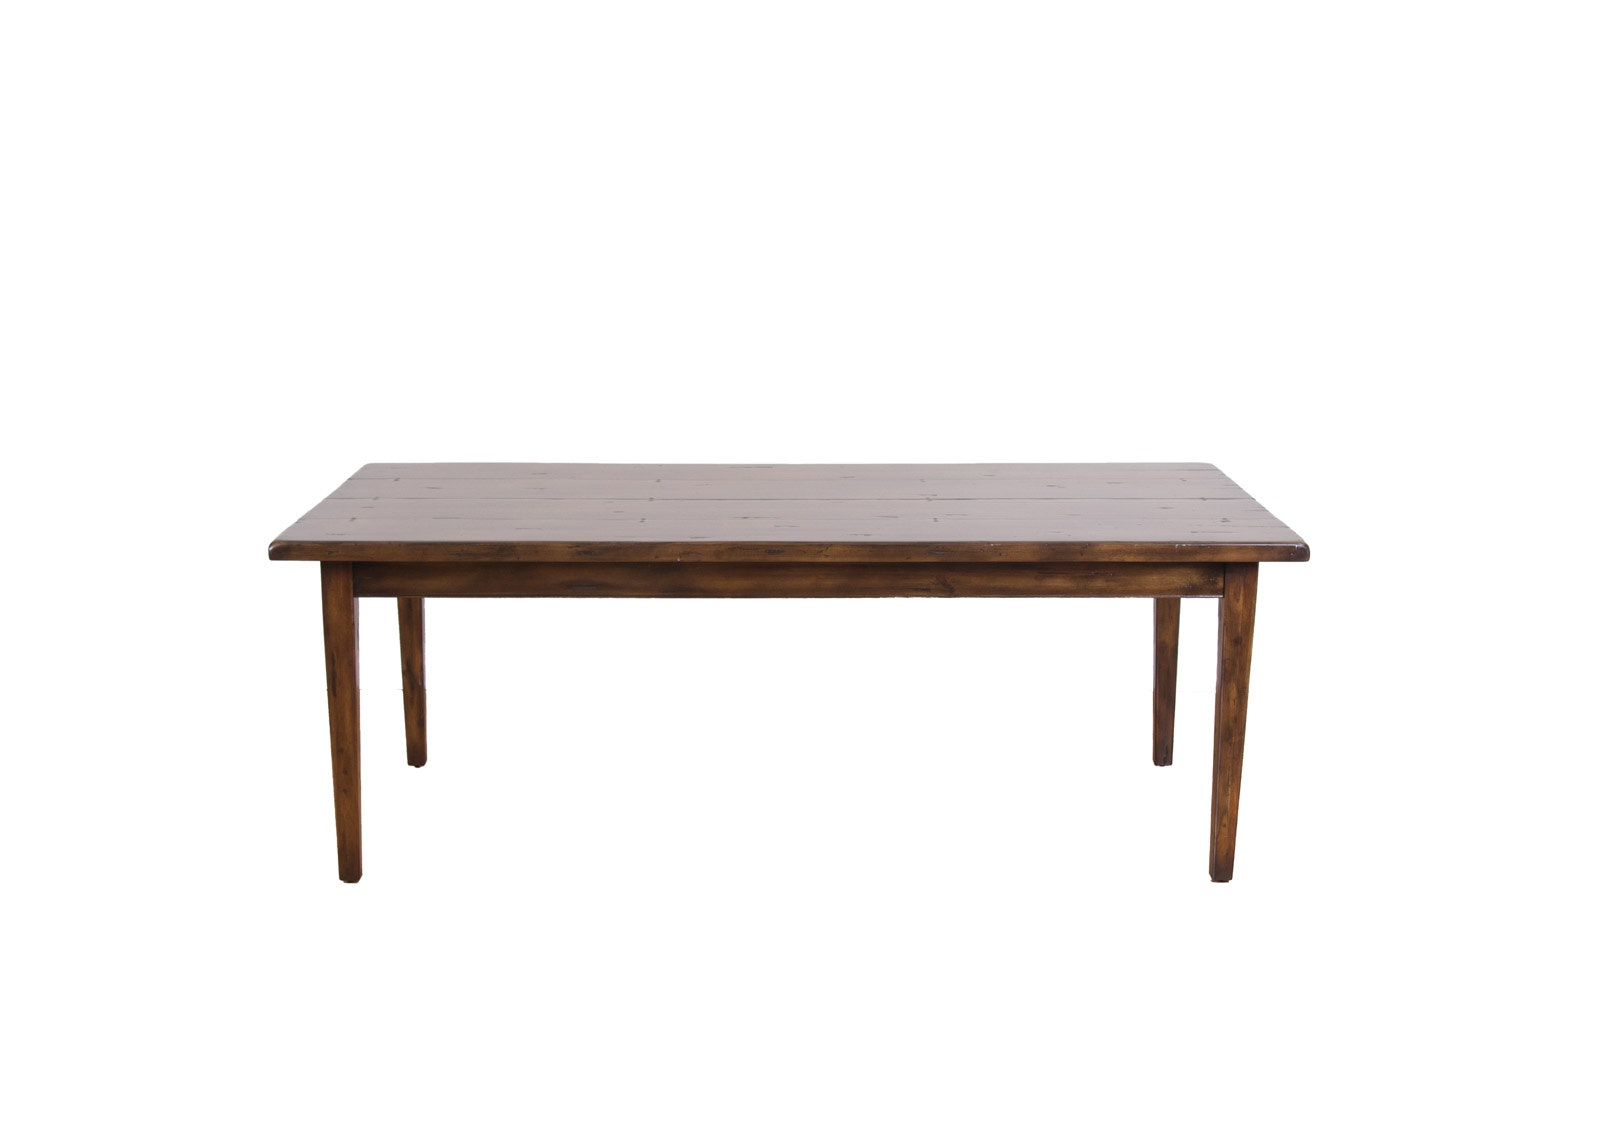 Fauld Cambridge Collection Primitive Farmhouse Table